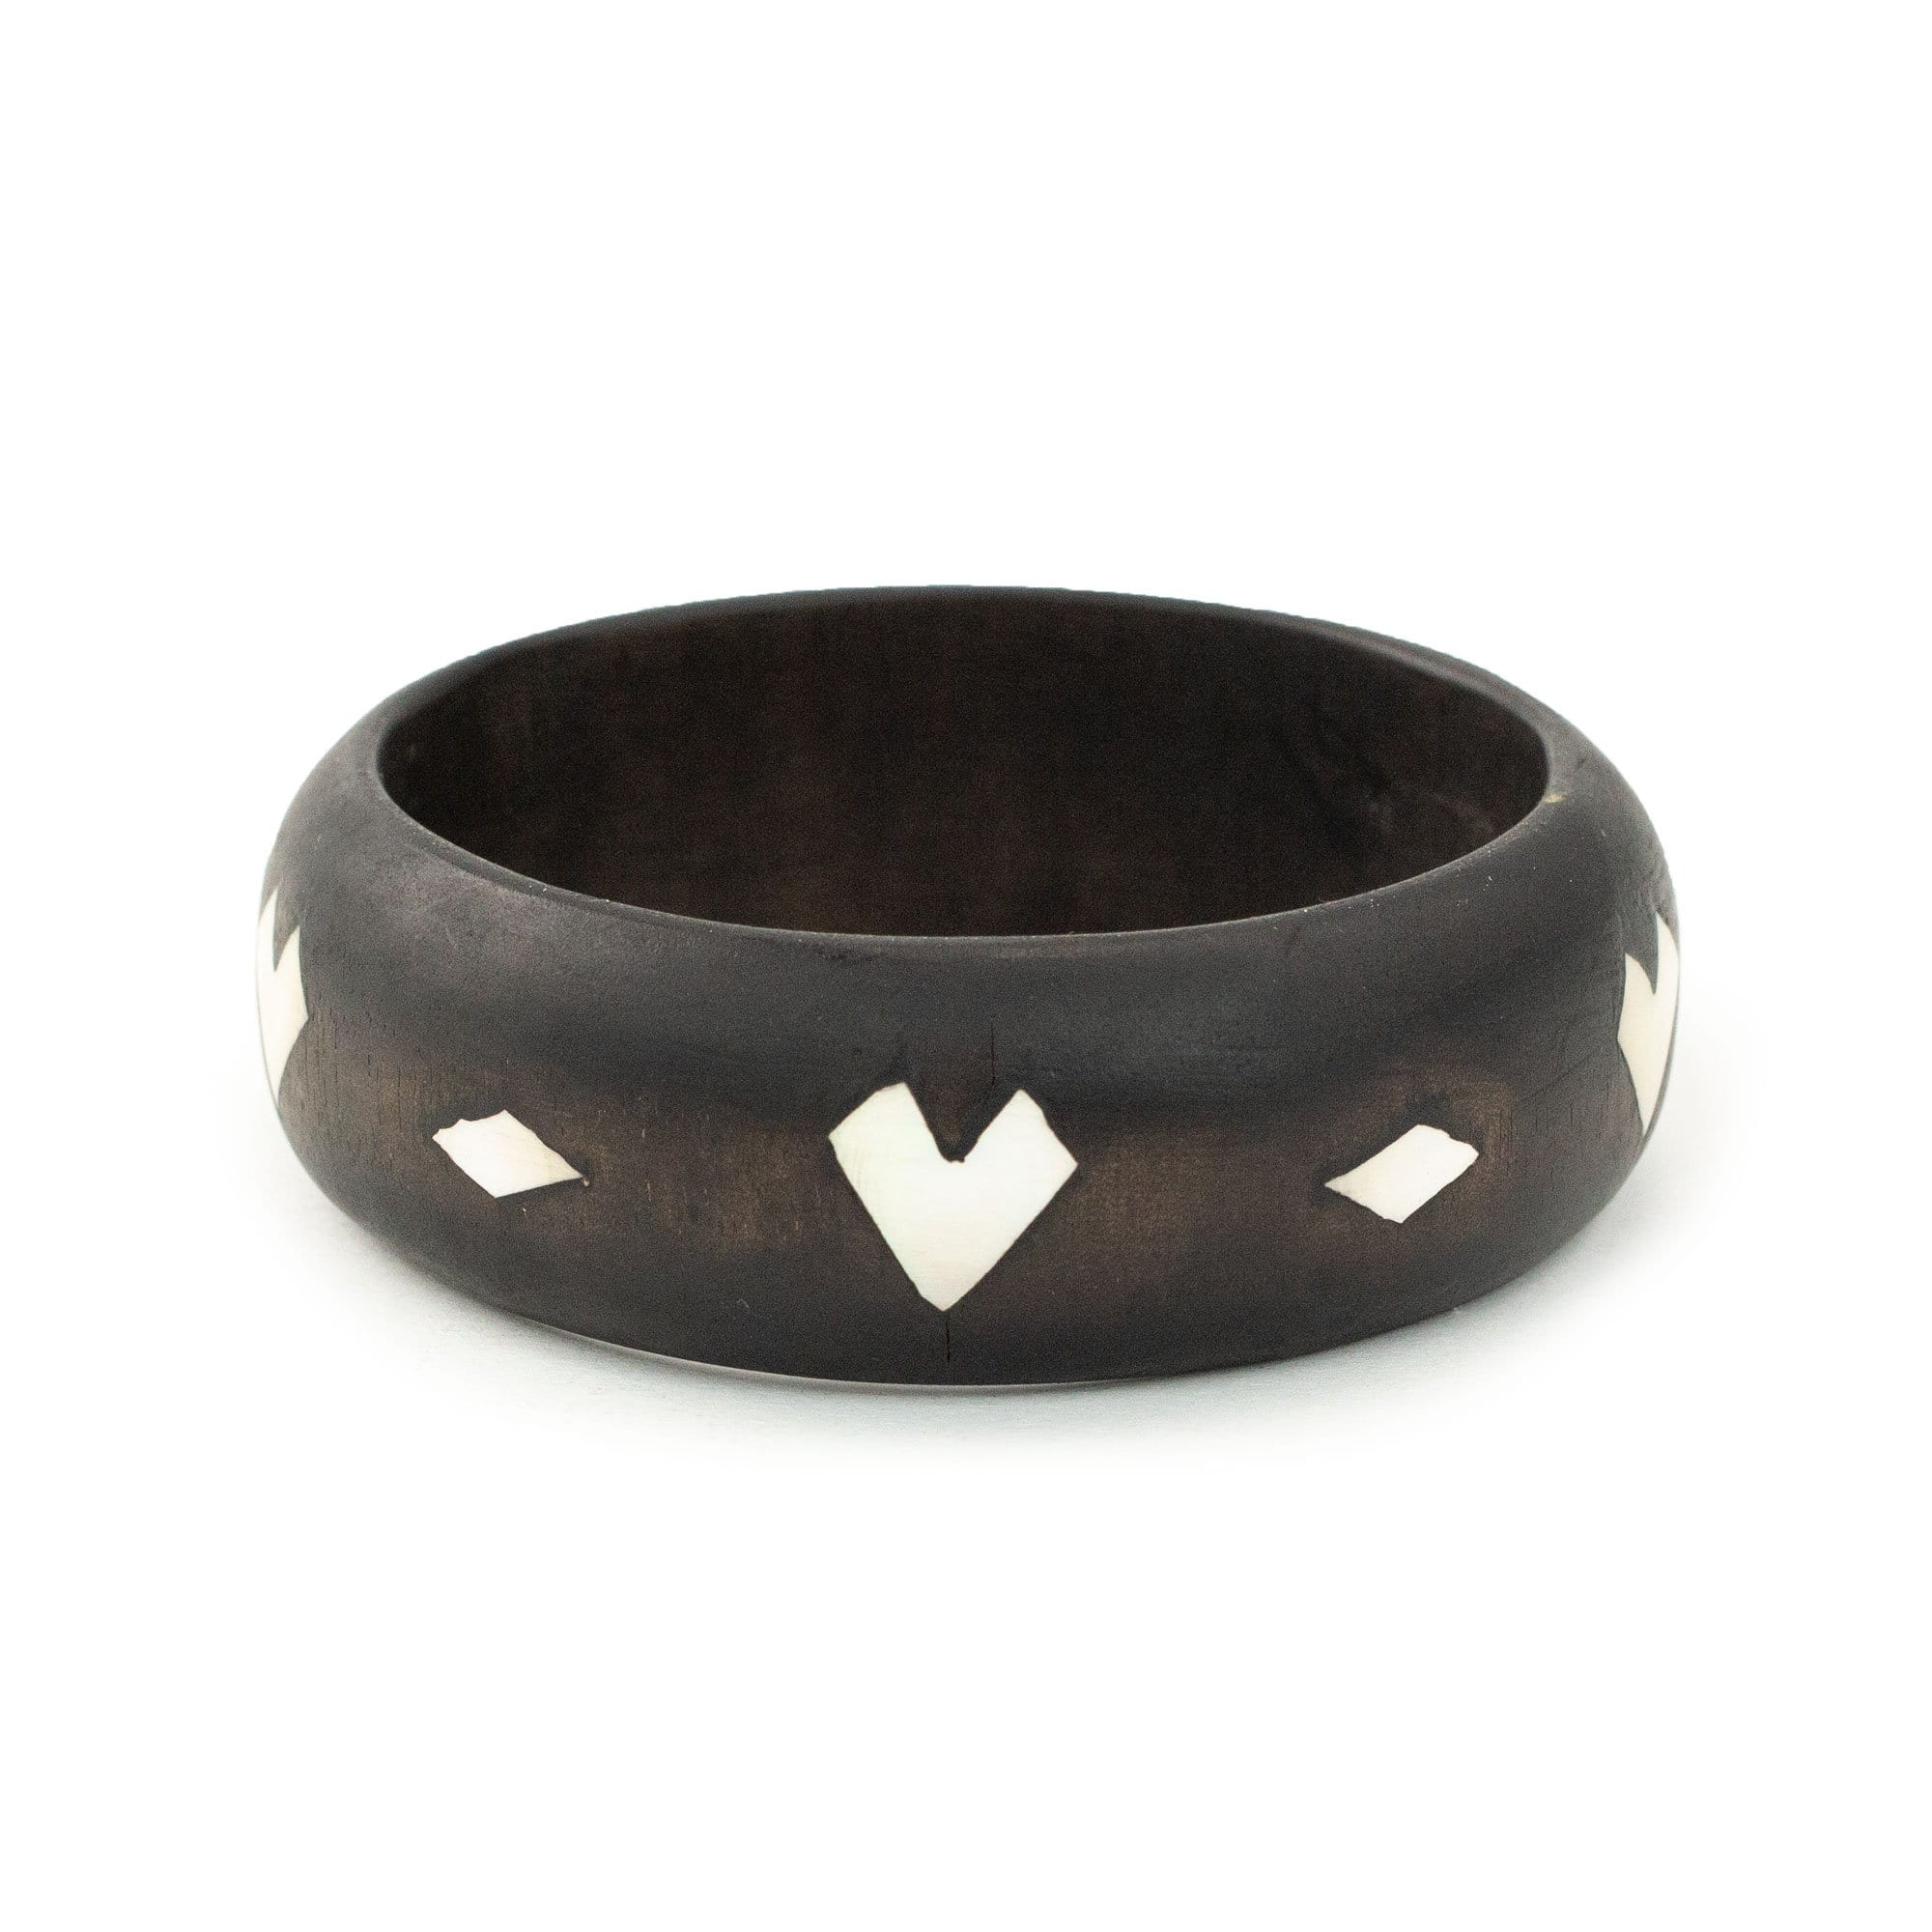 Mindanao Pearl & Wood Bangle - Heart